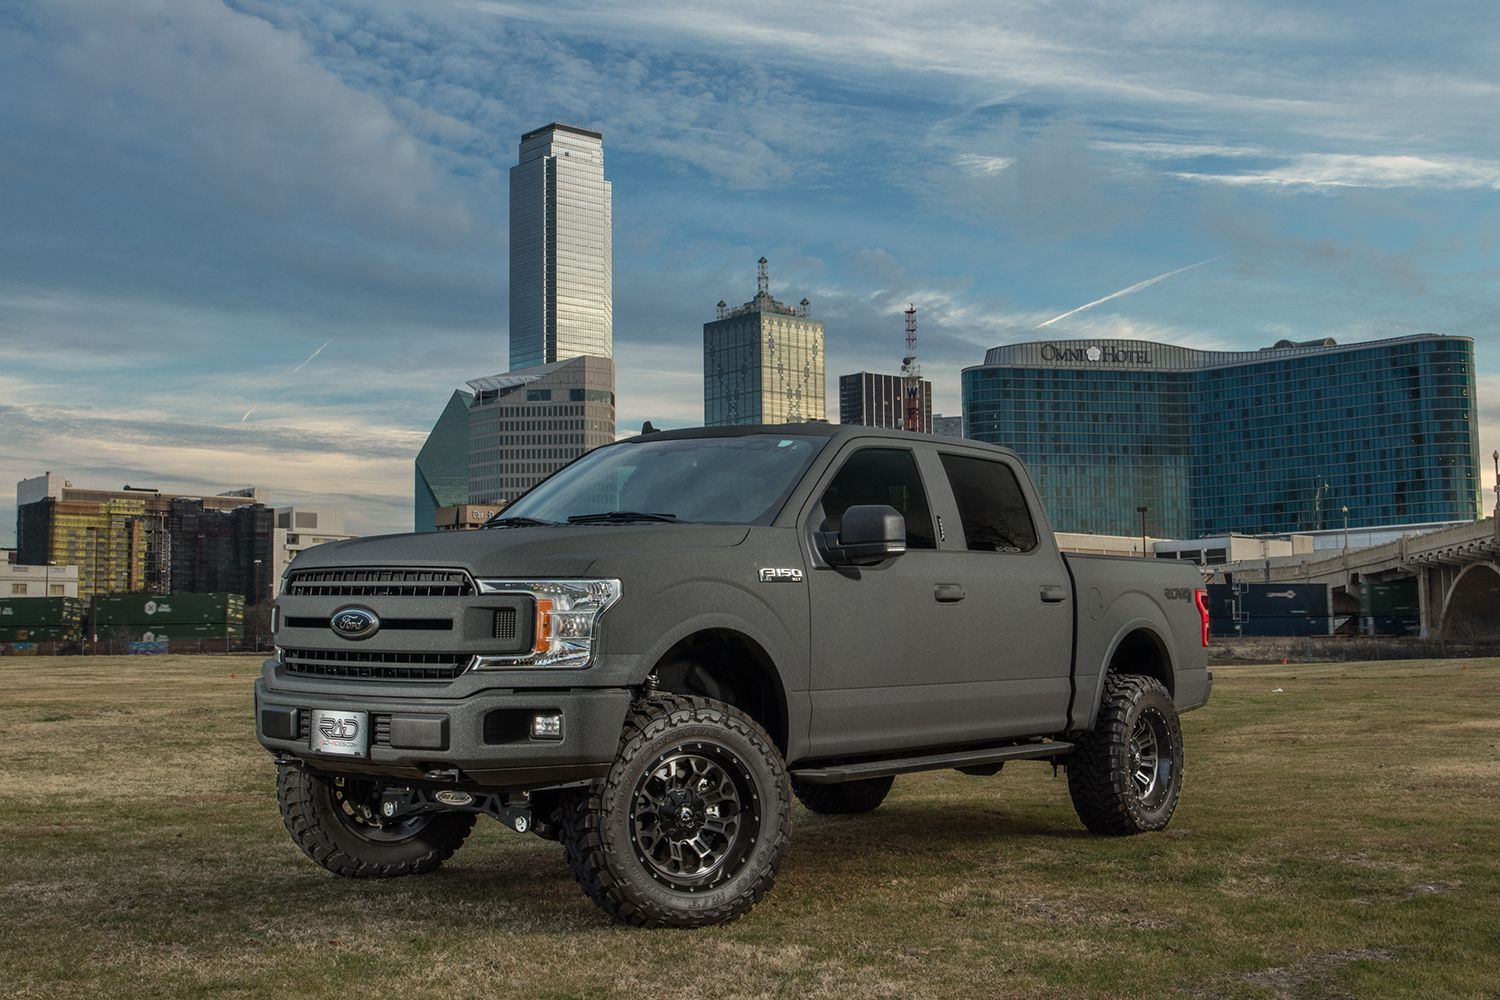 2018 Ford F150 XLT Gray Kevlar 4x4 Lifted Truck